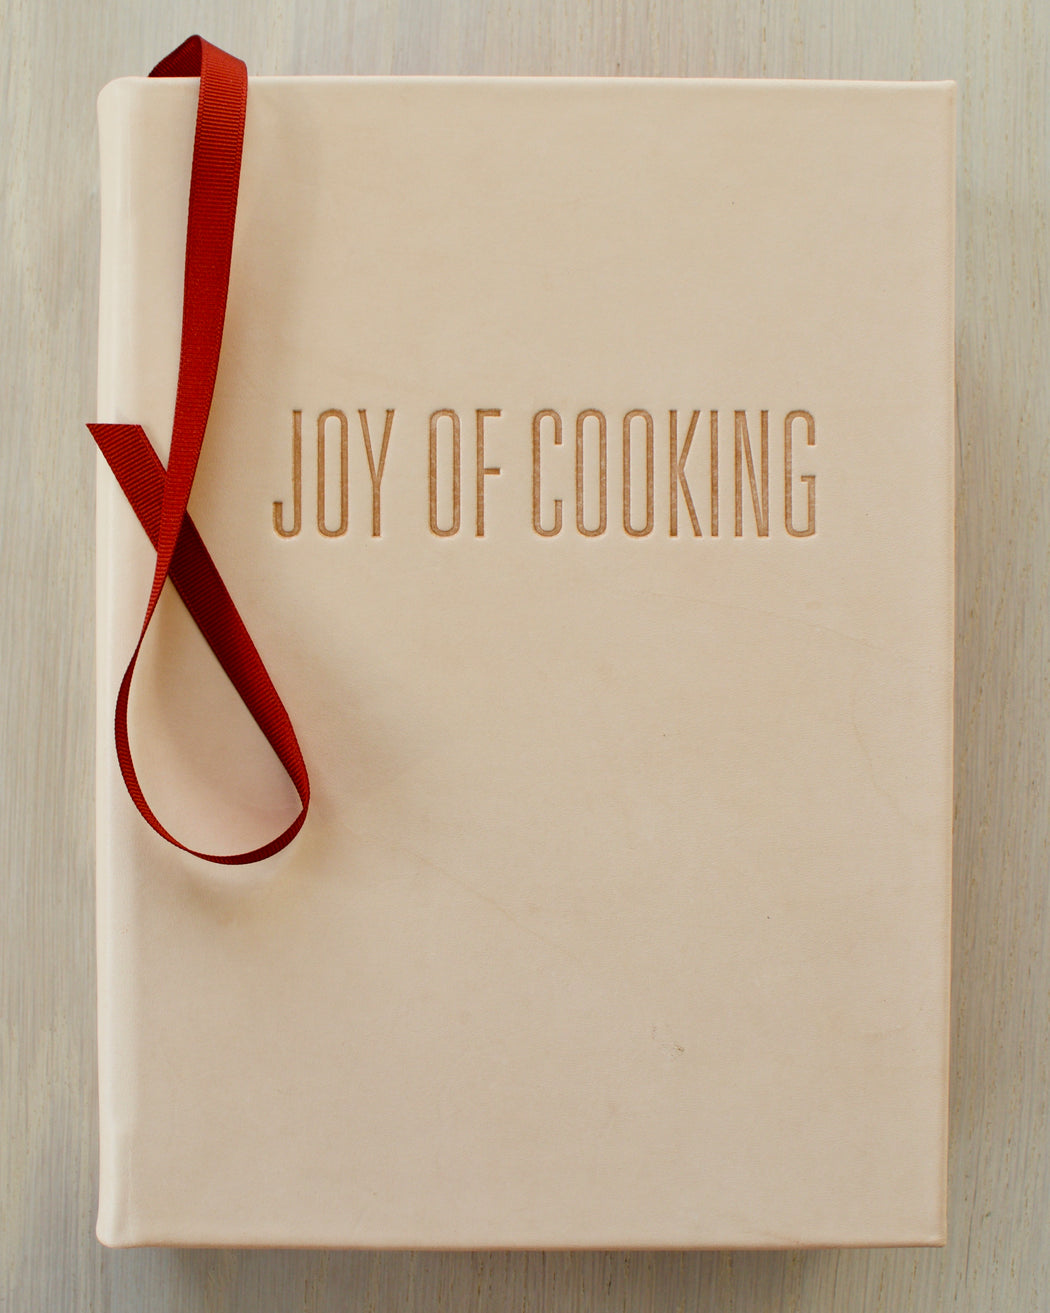 Joy of Cooking